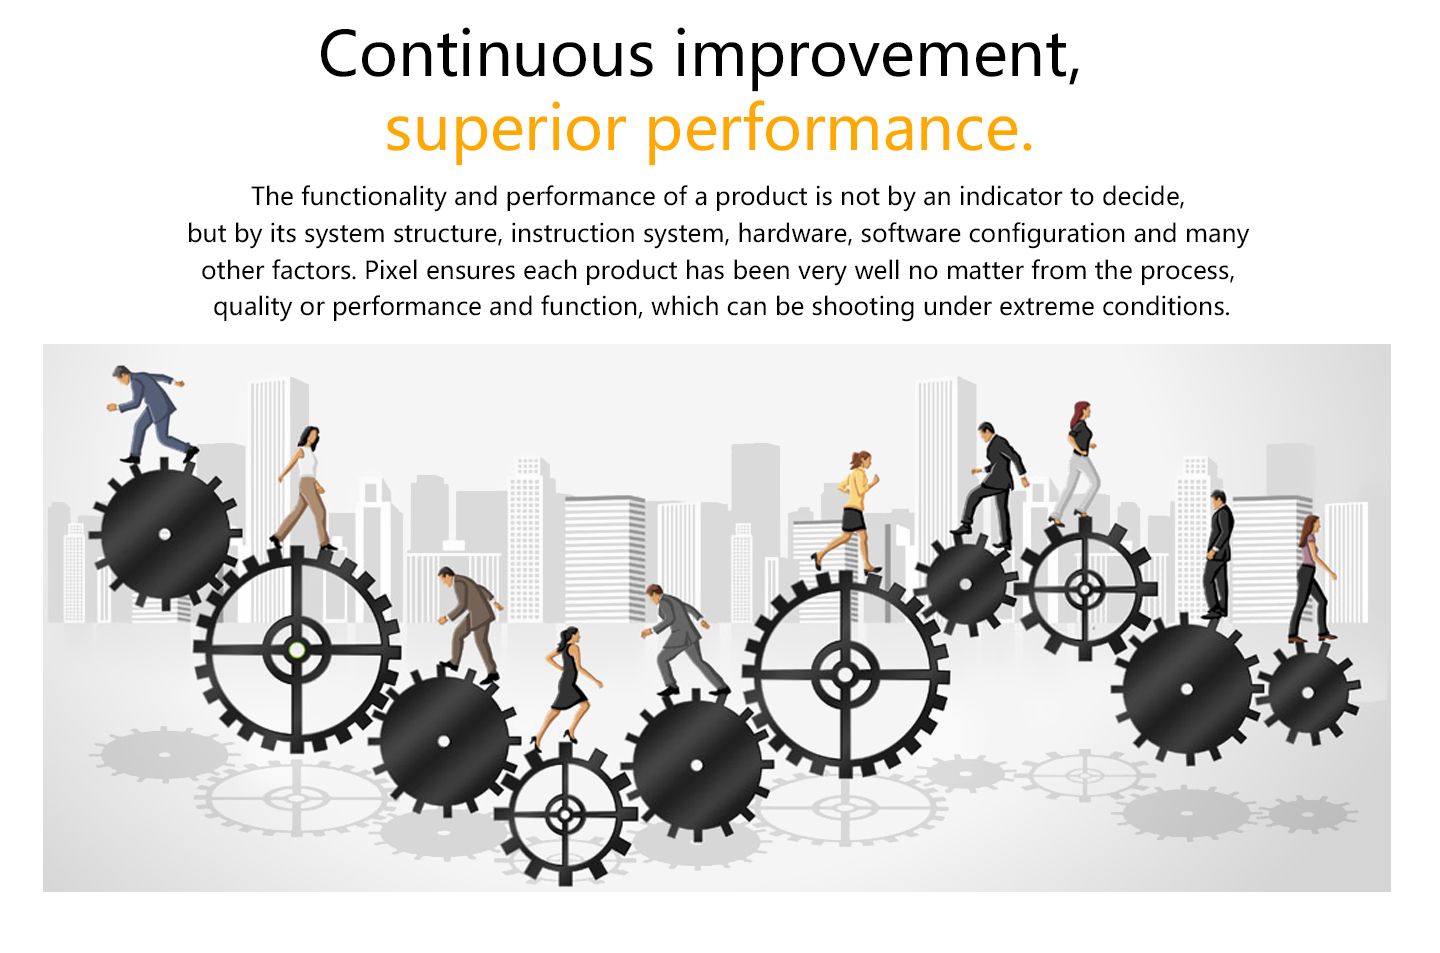 Continuous improvement, siperior performance